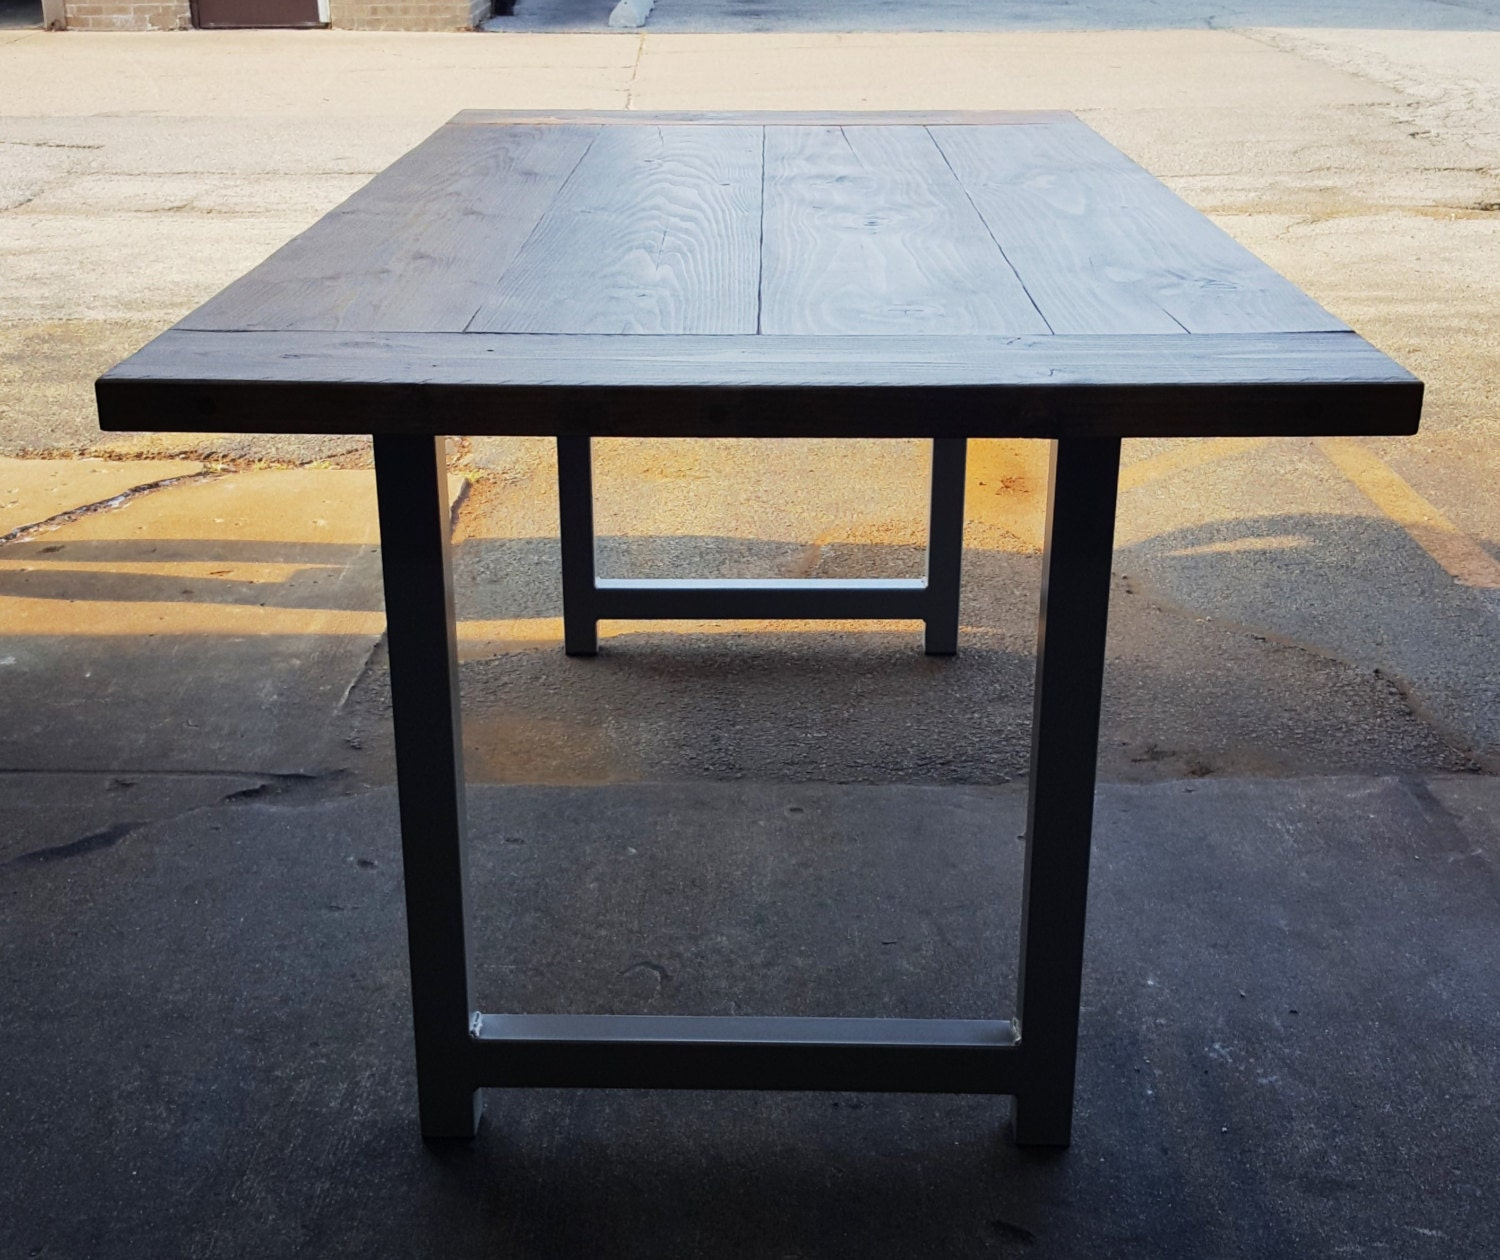 Steel Table Legs Industrial Legs Modern Table Legs Bench